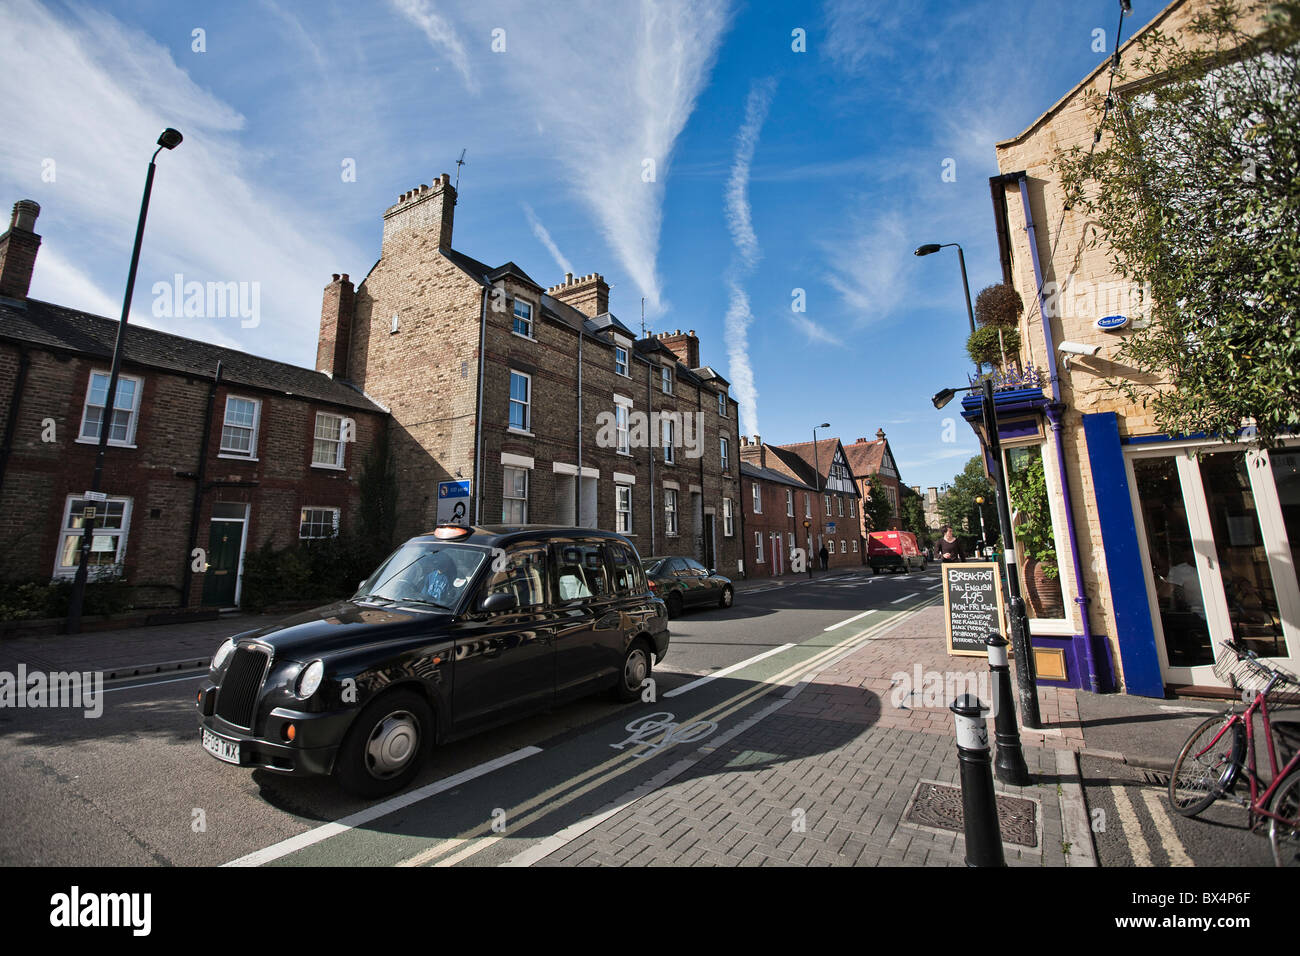 Oxford - Cowley Rd with cab - Stock Image